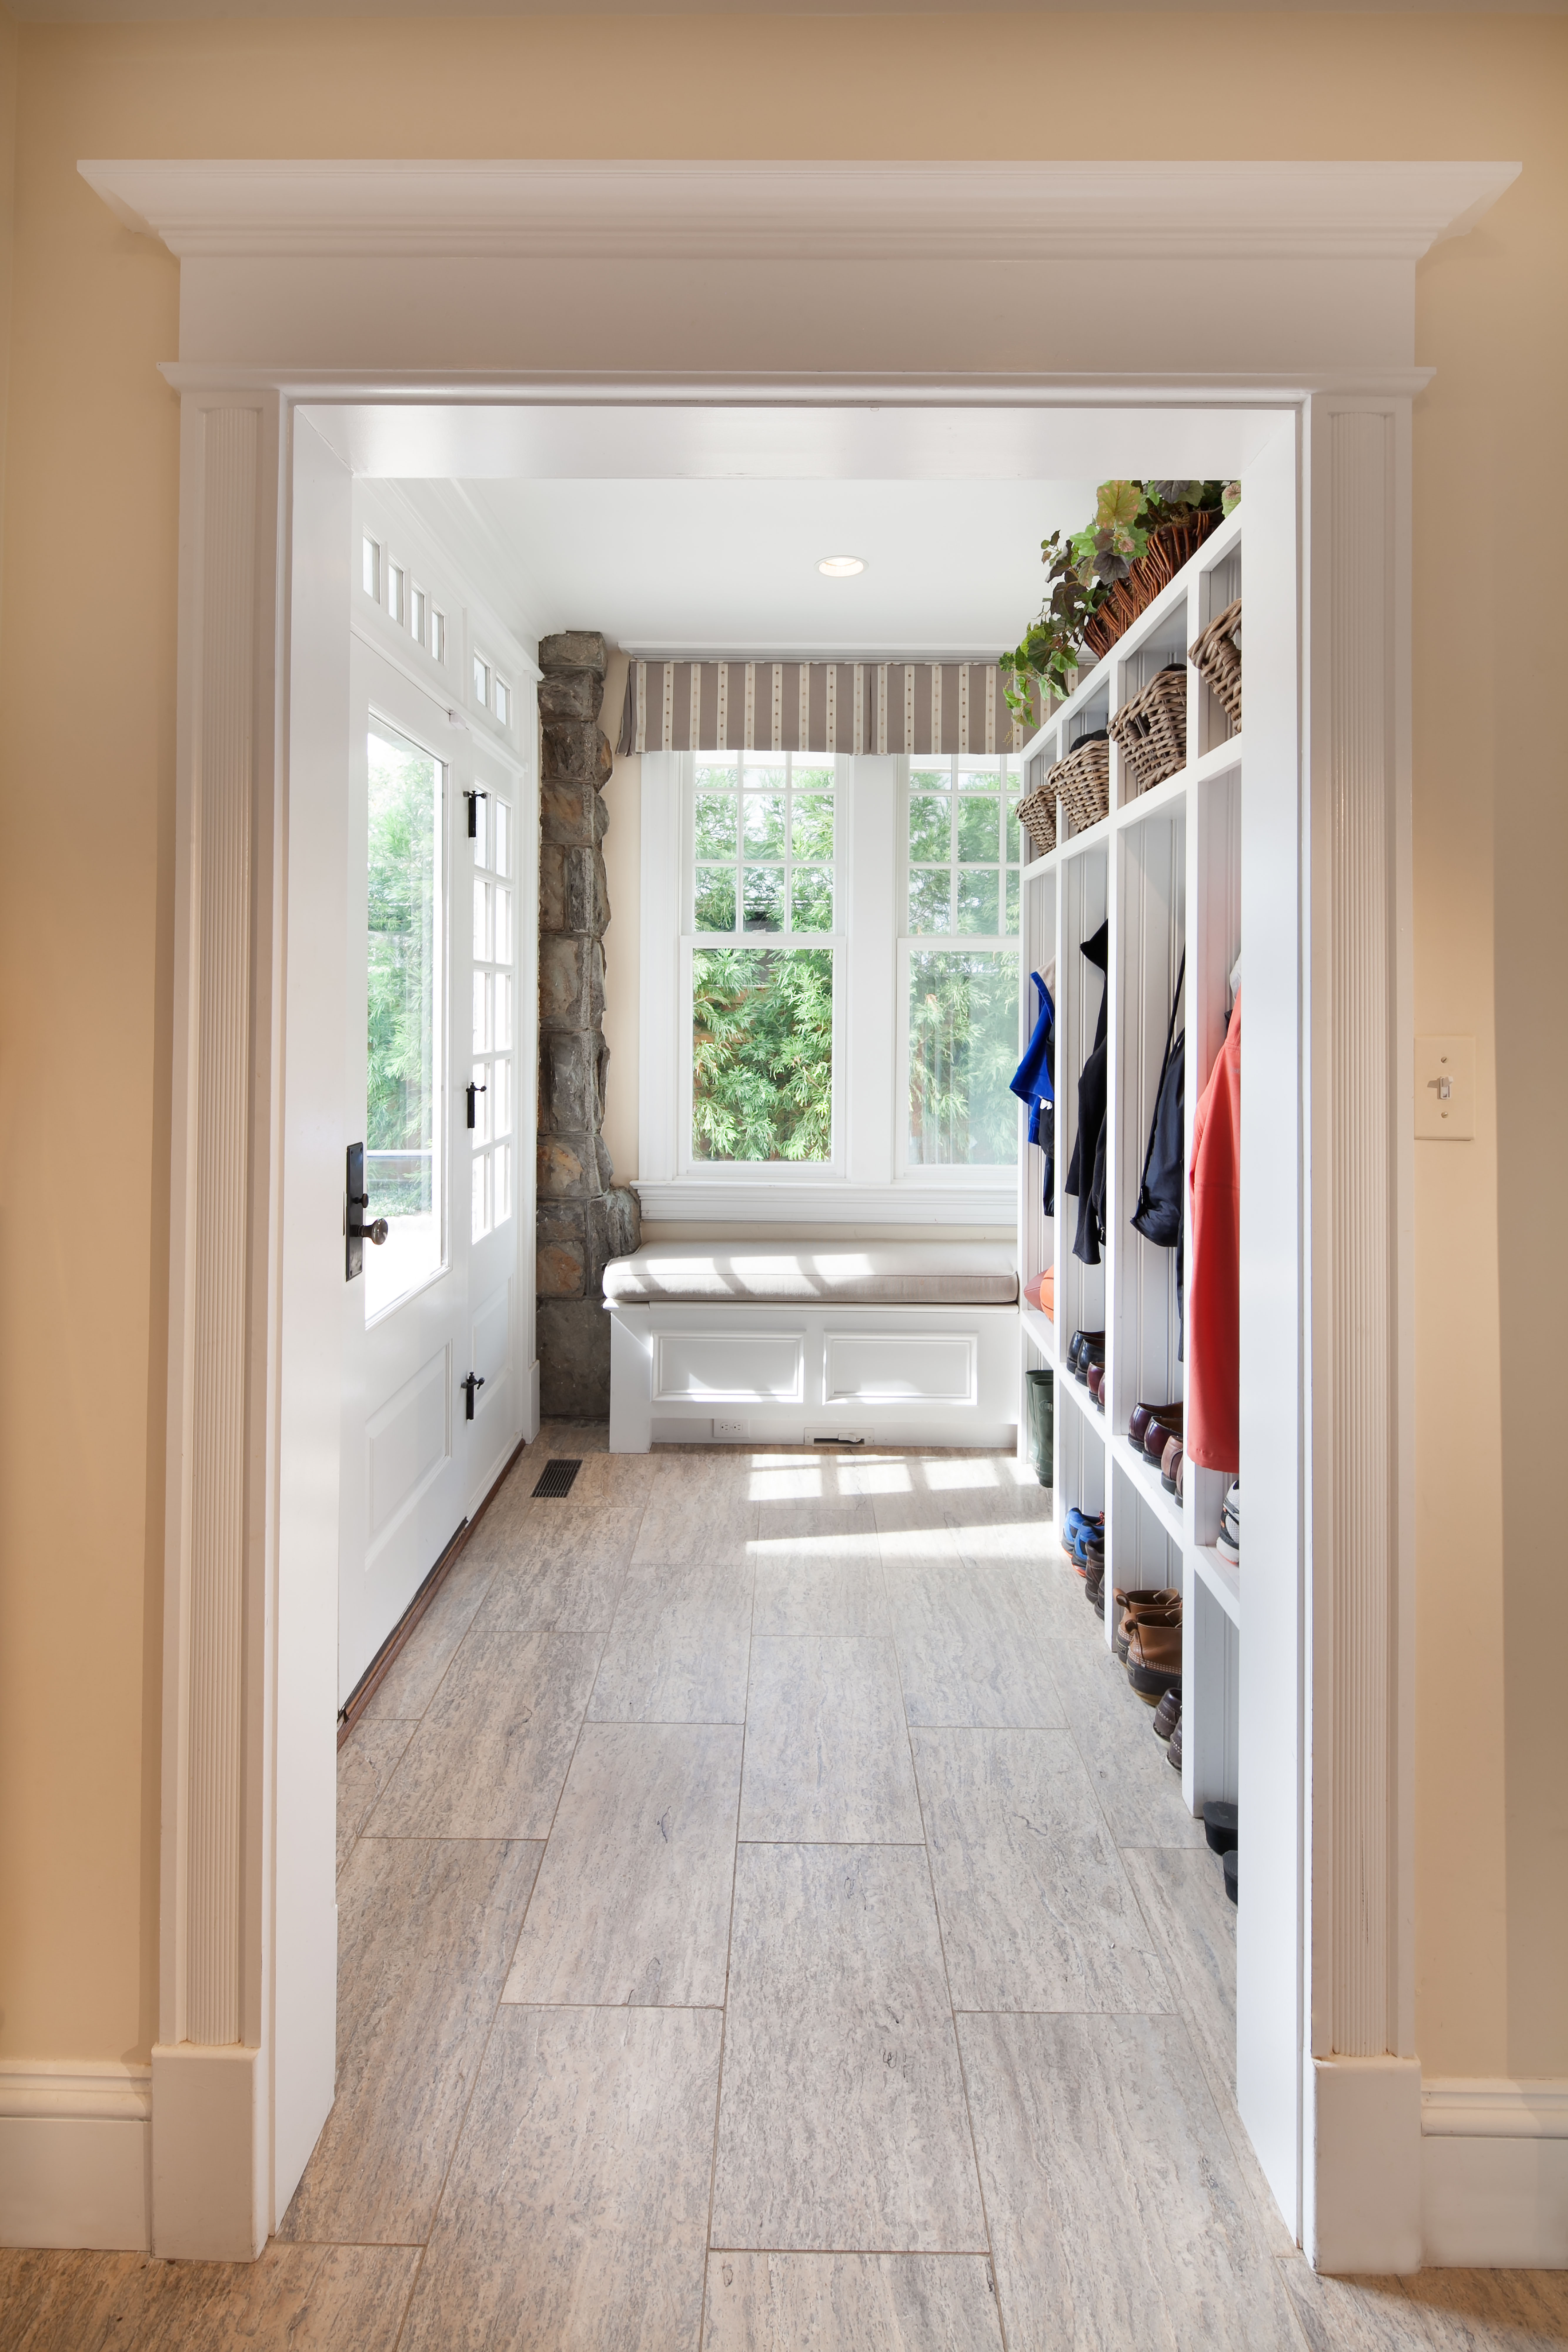 Hallway with Cubbies